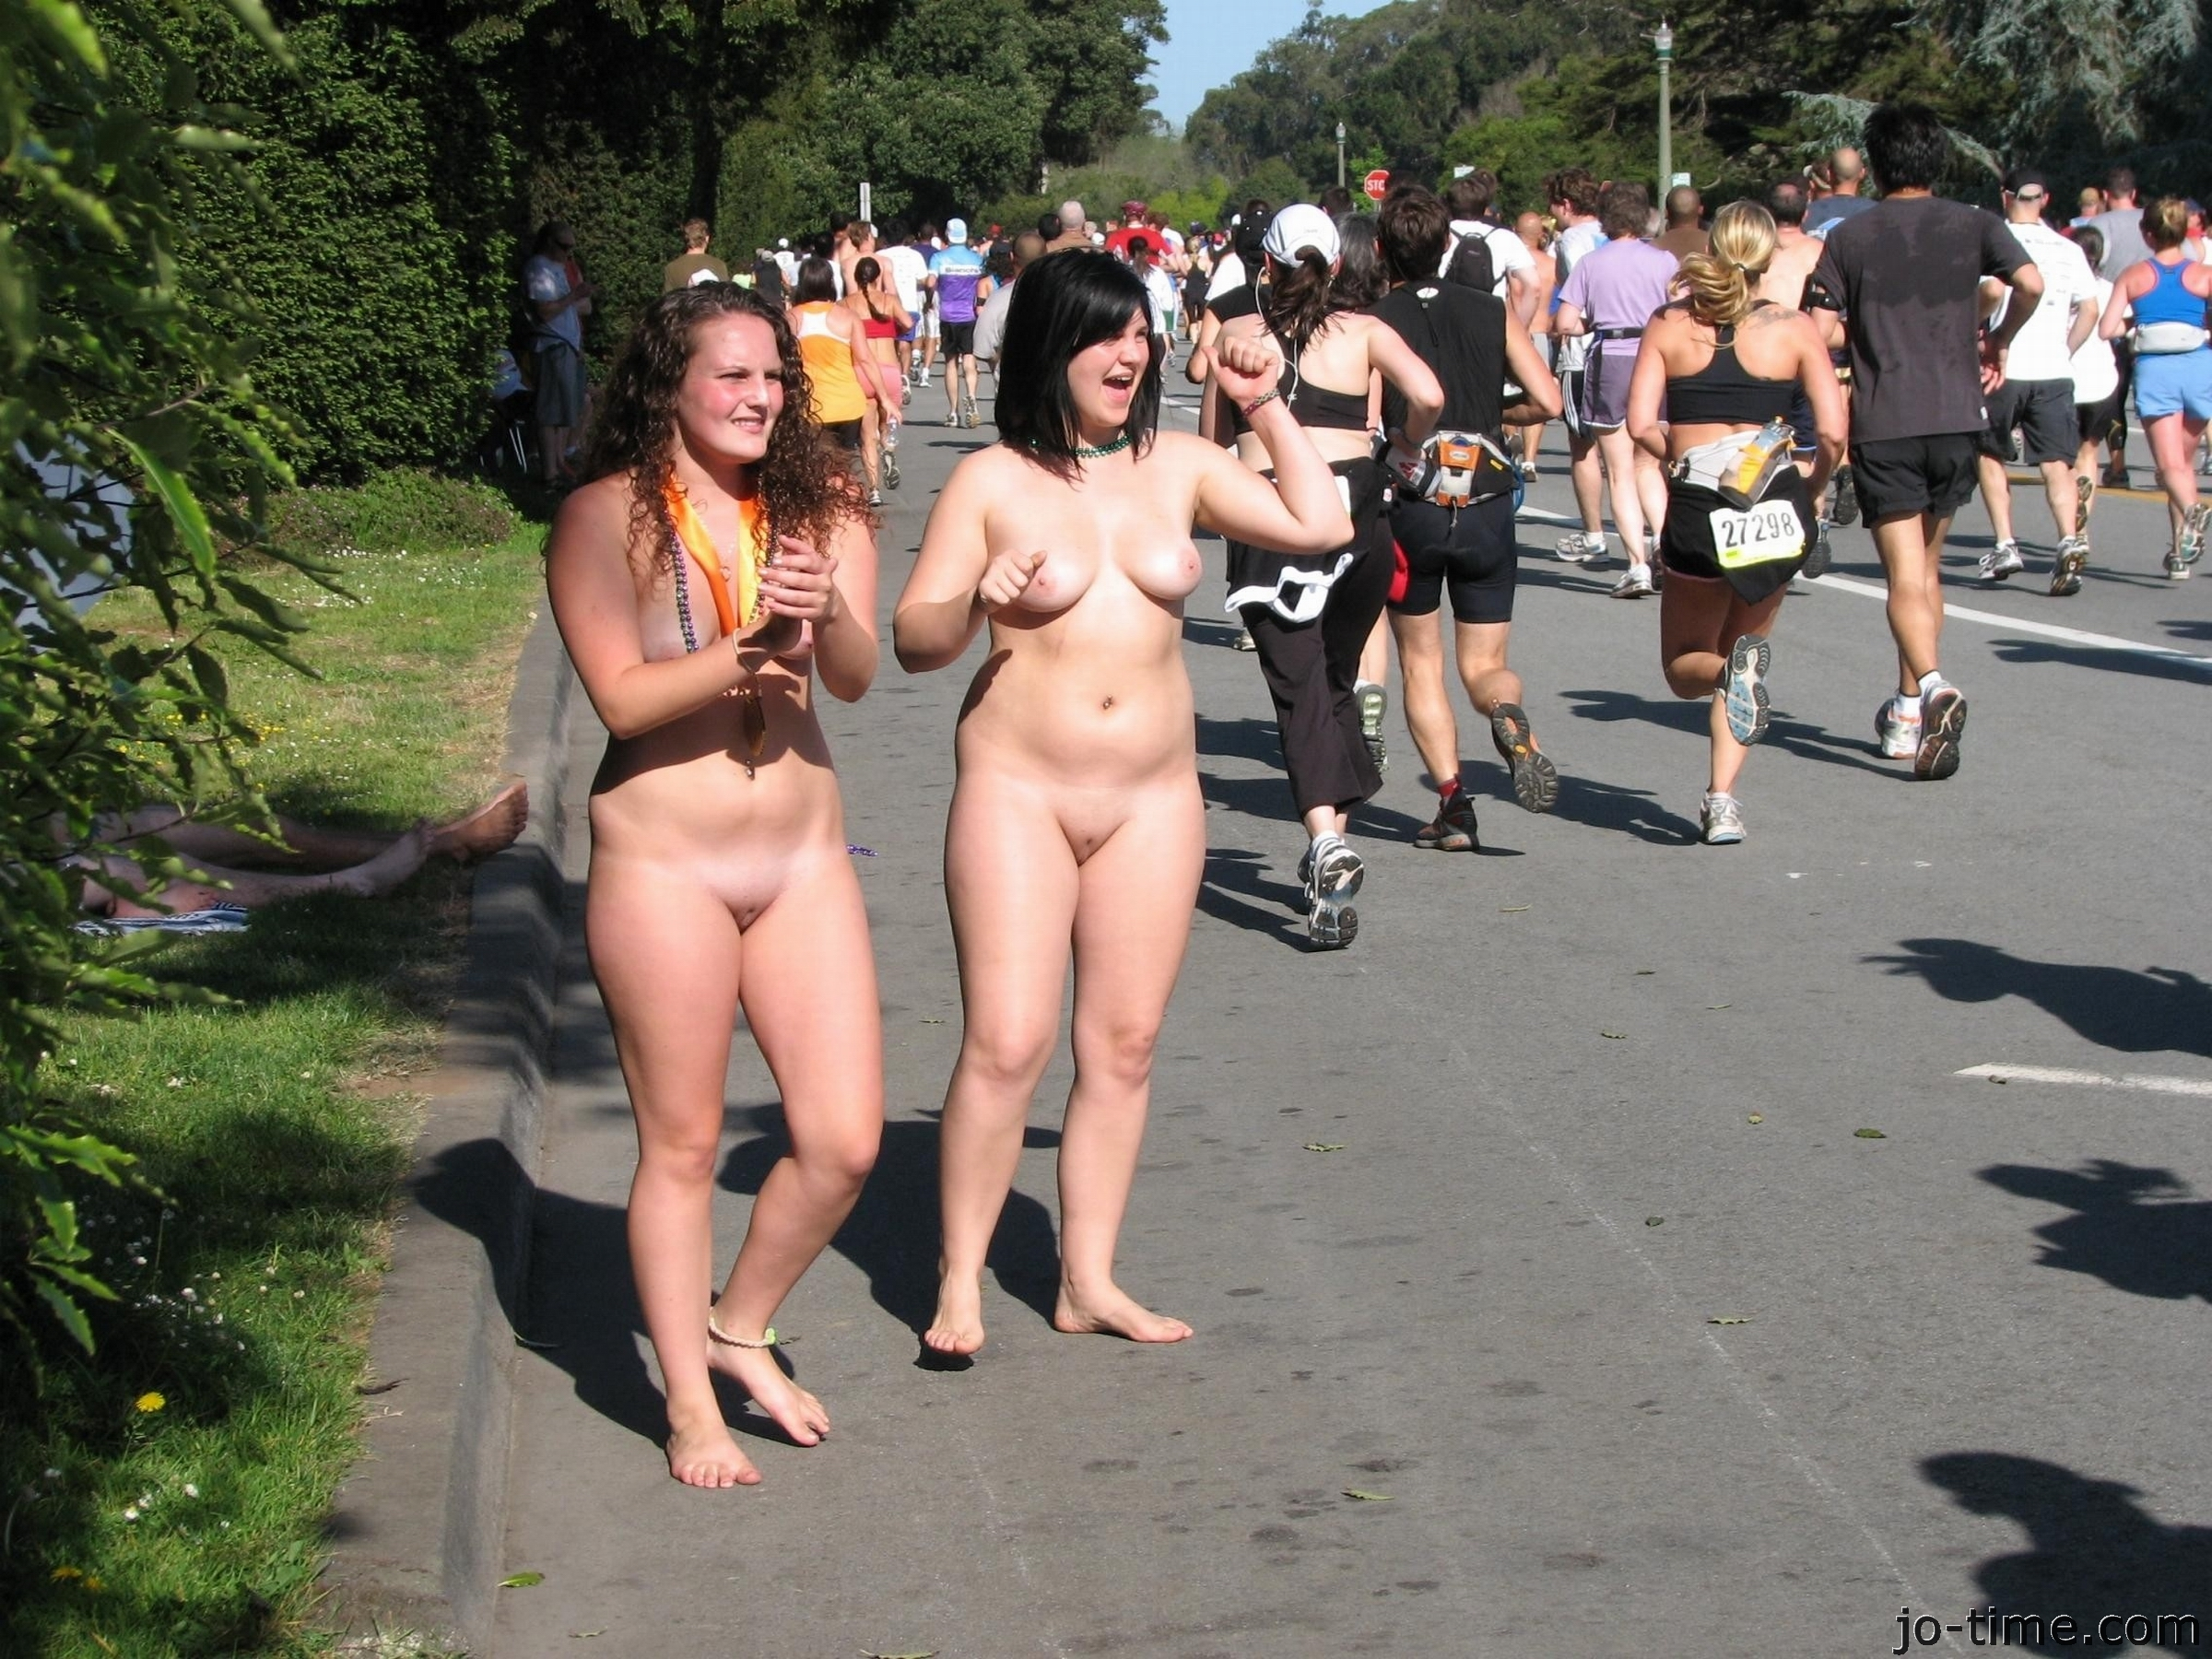 Apologise, but, Candid public nudity